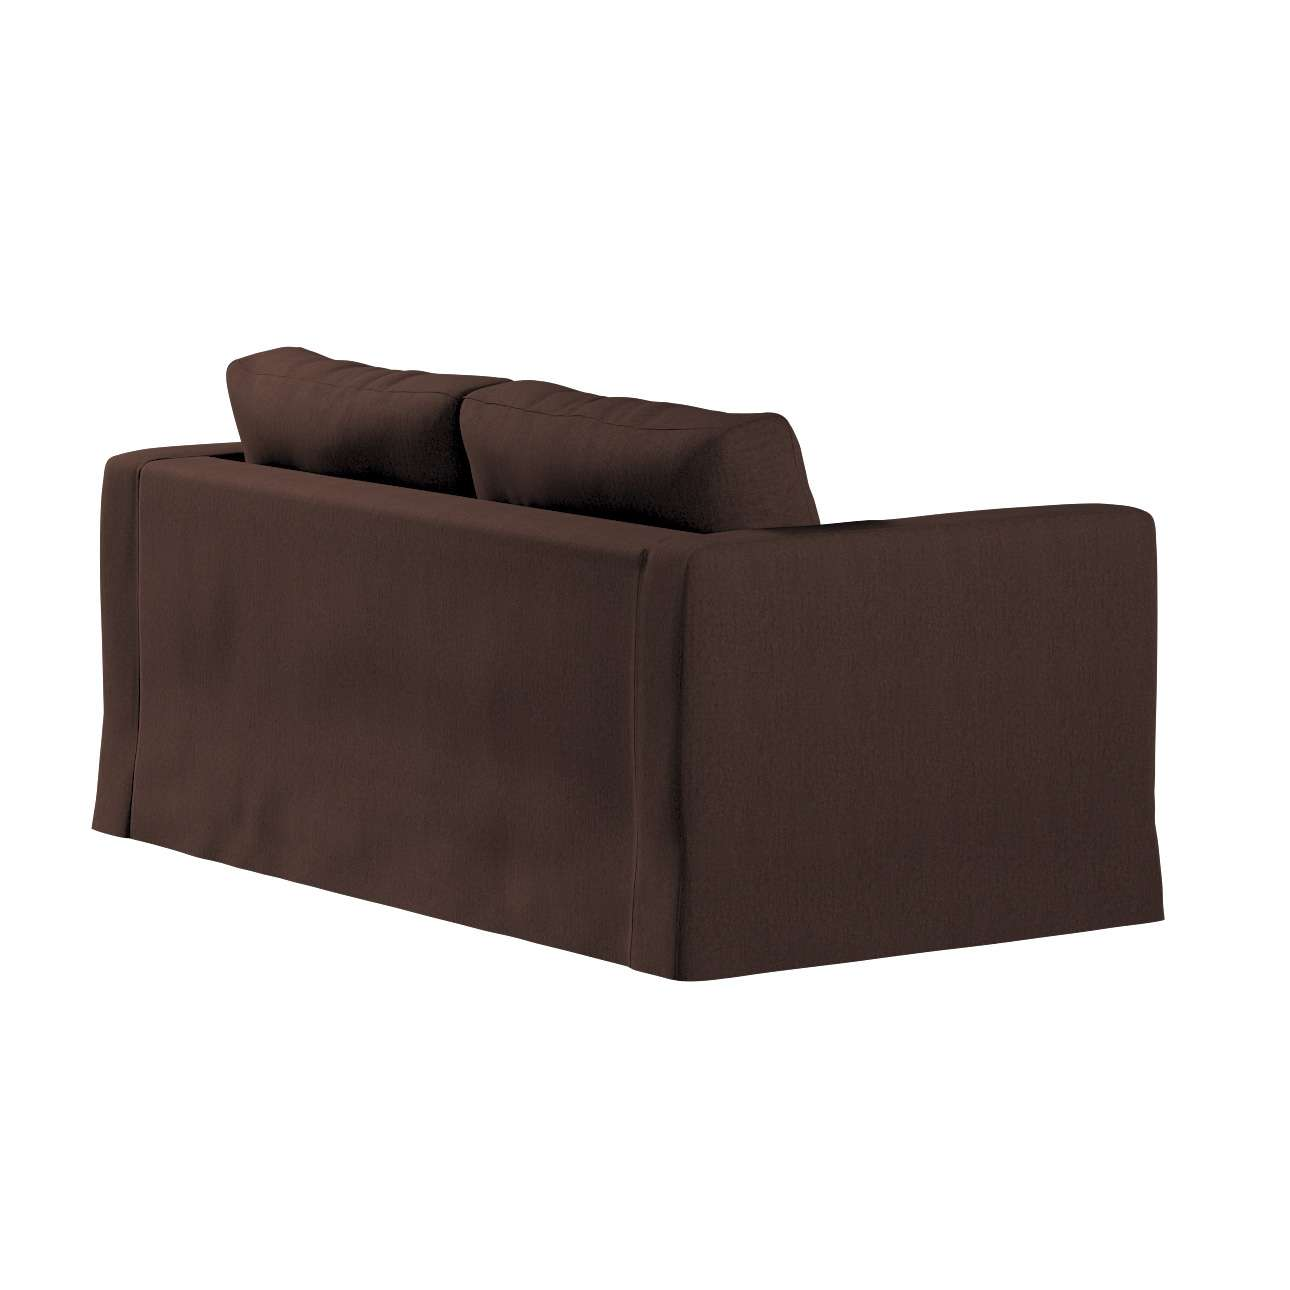 Floor length Karlstad 2-seater sofa cover in collection Chenille, fabric: 702-18